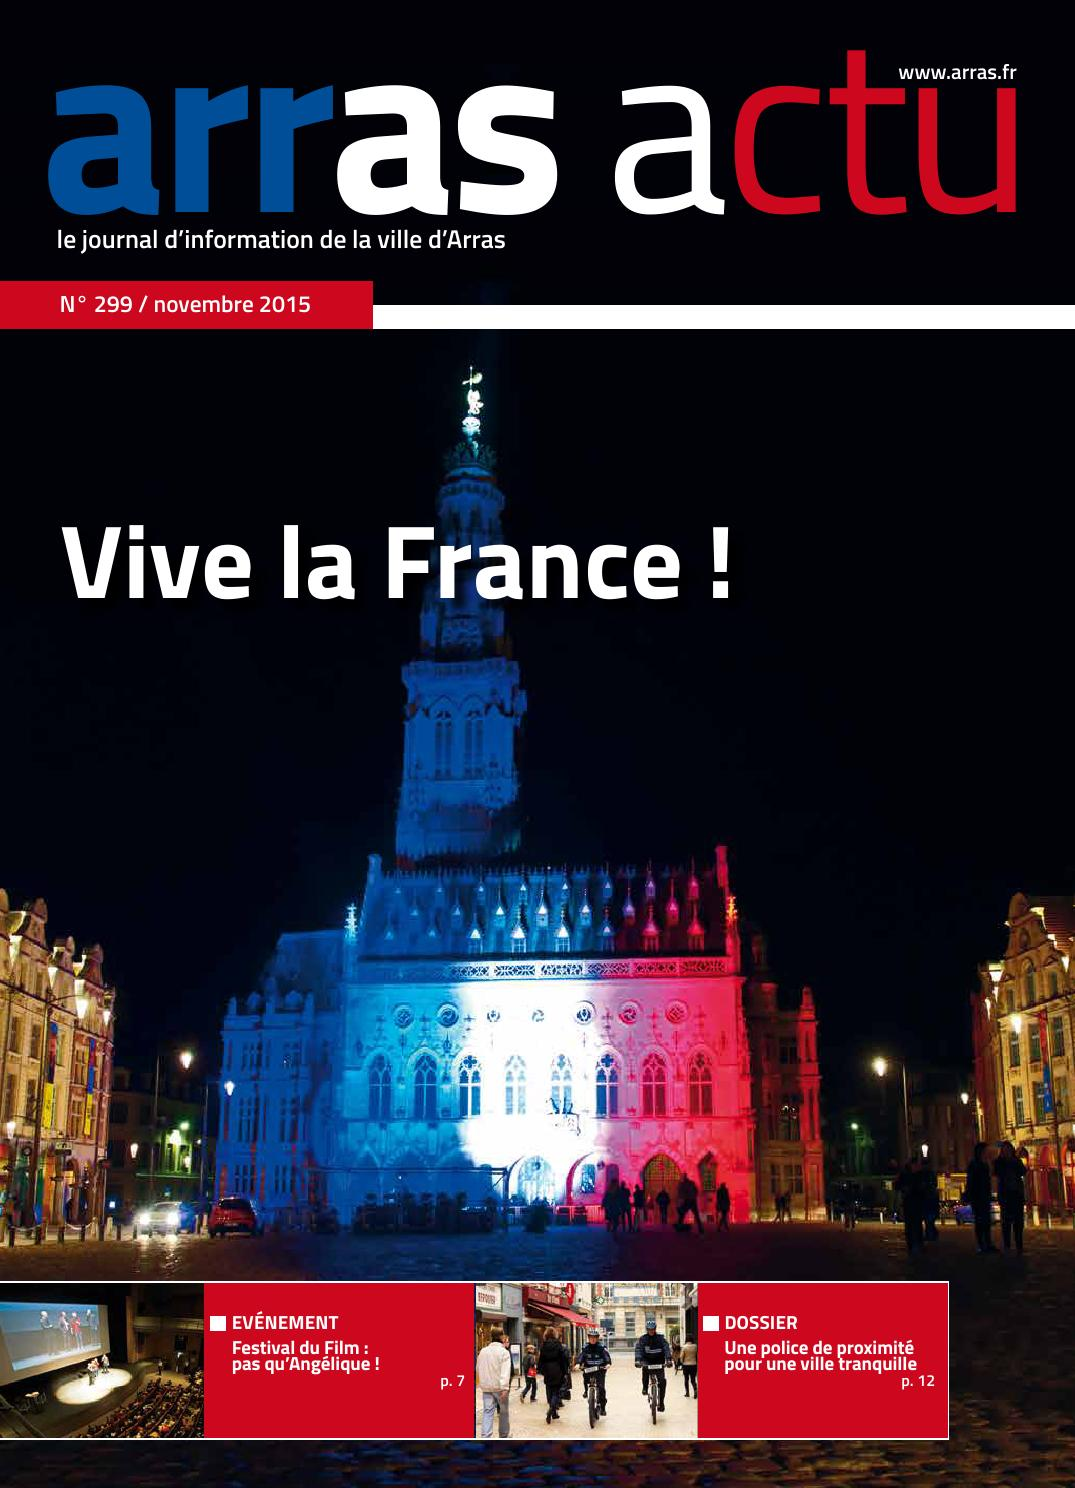 Cheminees Philippe Arras Arras Actu Novembre 2015 By Mairie D Arras Issuu